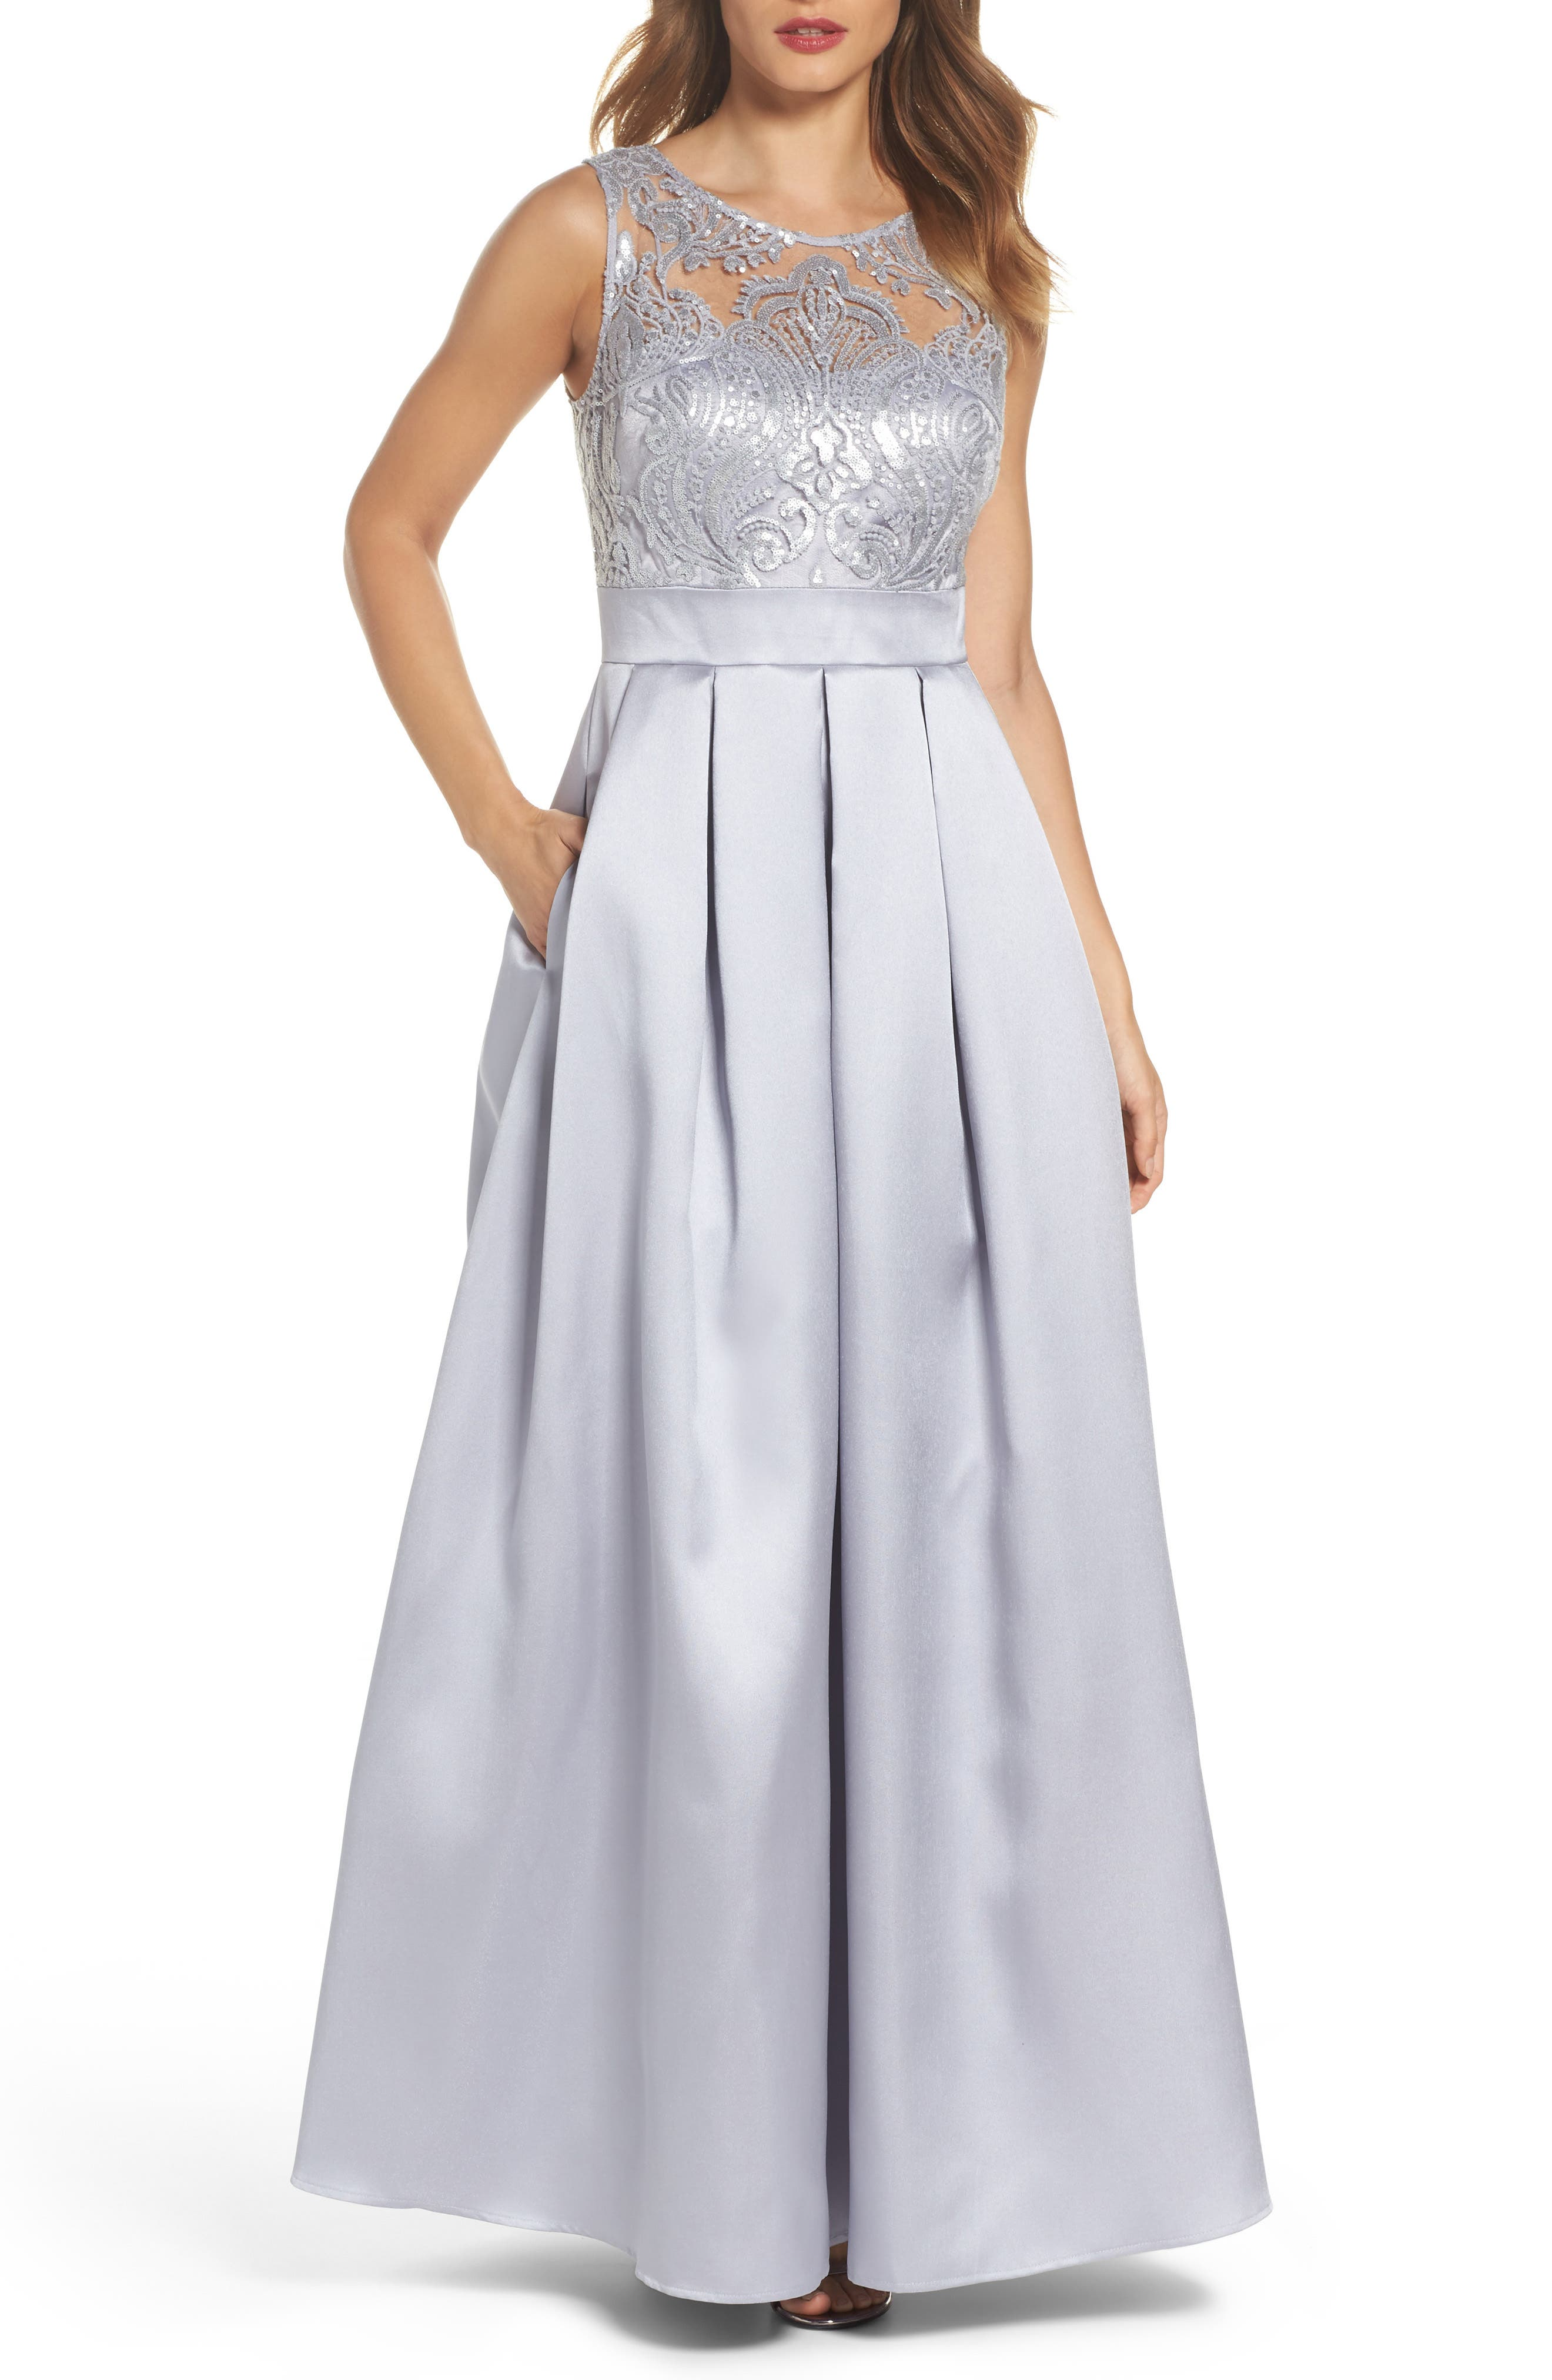 Sequin Embellished Illusion Neck Gown,                             Main thumbnail 1, color,                             040